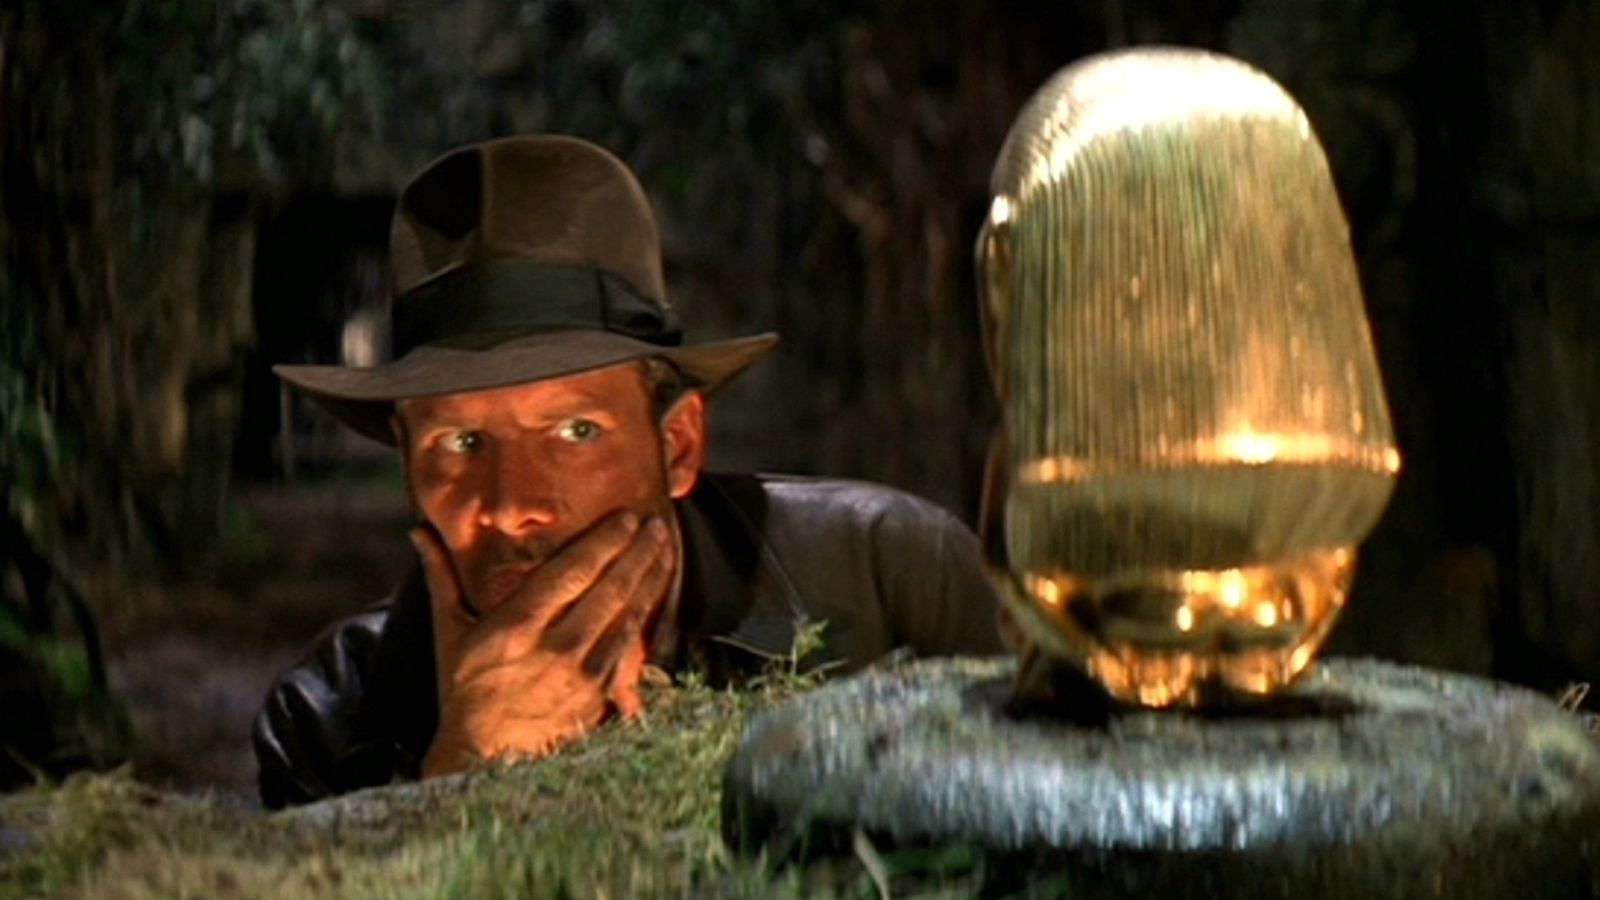 Indiana Jones looks at golden idol.